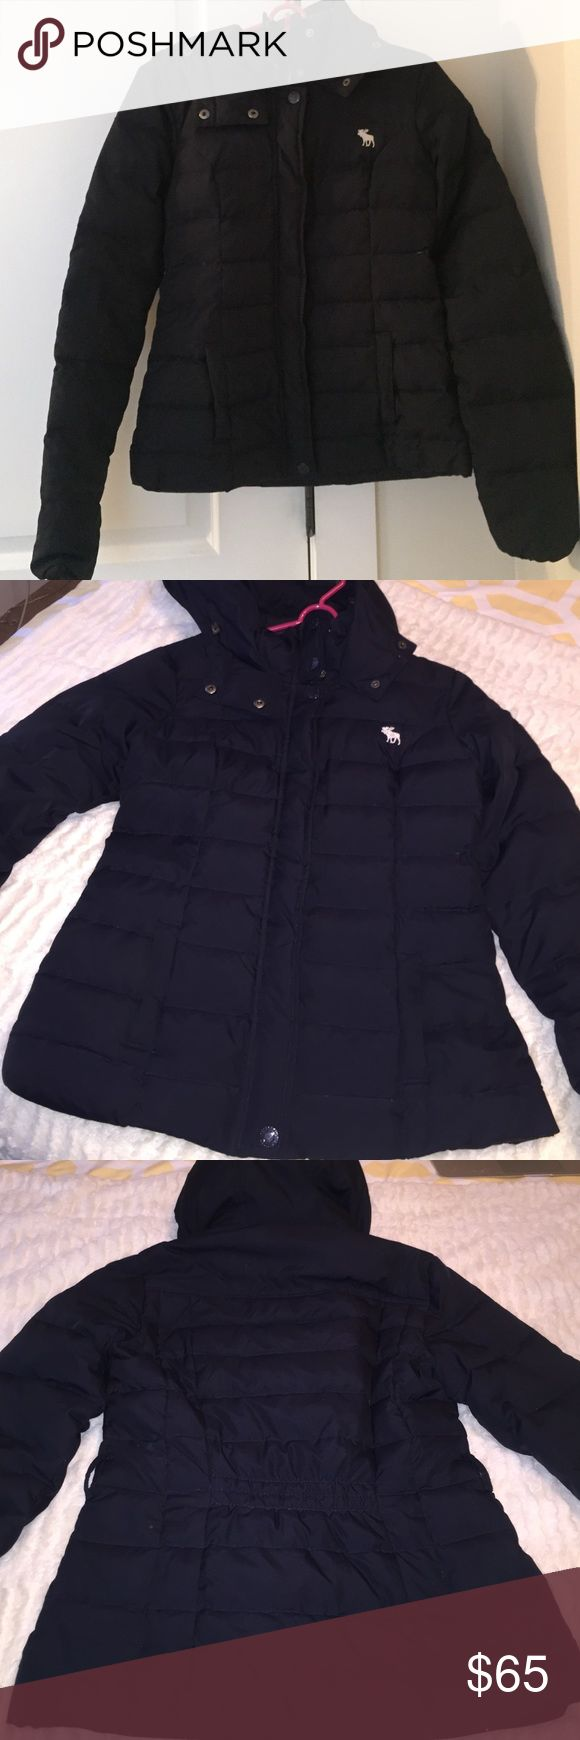 Abercrombie and Fitch Coat A&F Coat has been worn a number of times however does not show any signs of use (besides the inside tag which can be seen in picture 4) It is in excellent conditions and an extremely warm coat! Offers are encouraged! Abrecrombie and Fitch Jackets & Coats Puffers